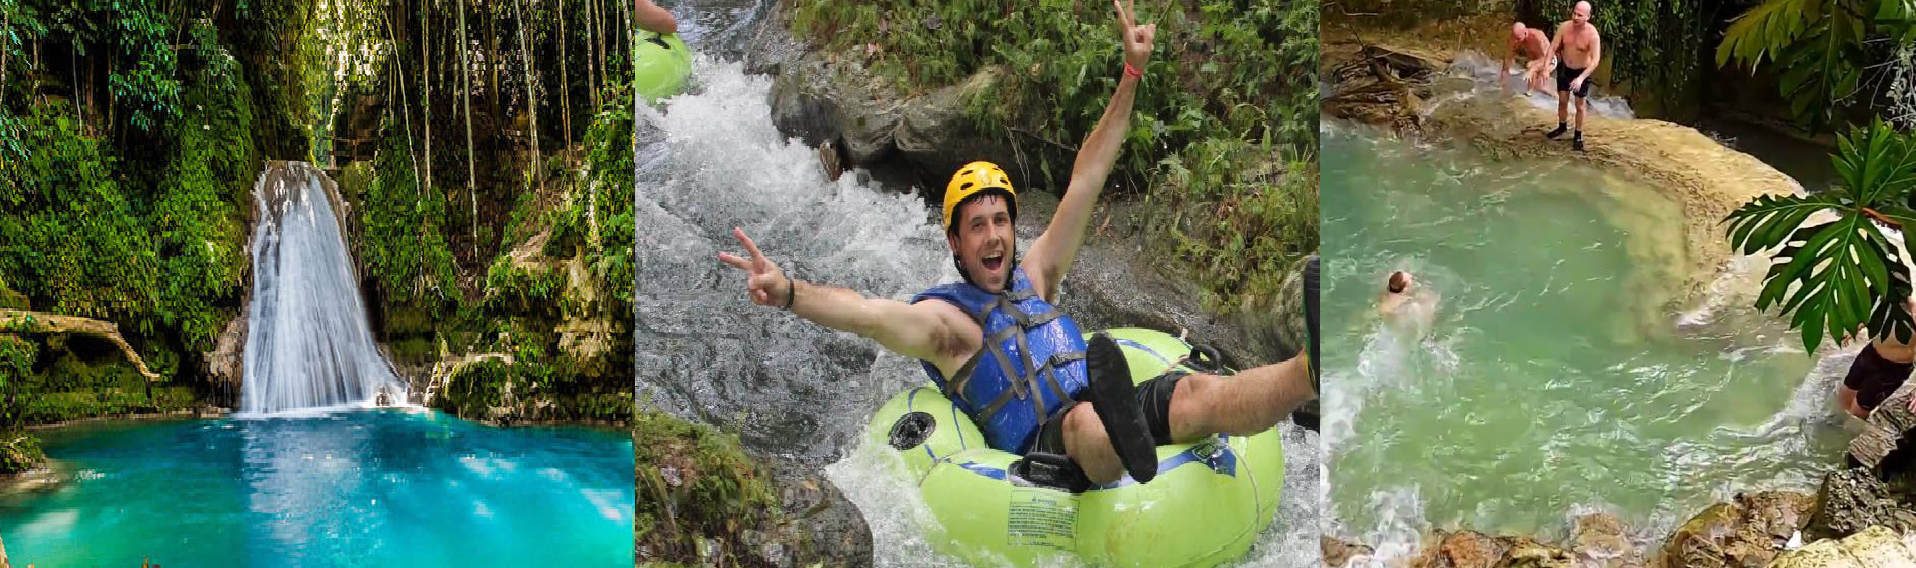 BLUE HOLE WATERFALLS, RIVER TUBING & DUNN'S RIVER FALLS TOUR